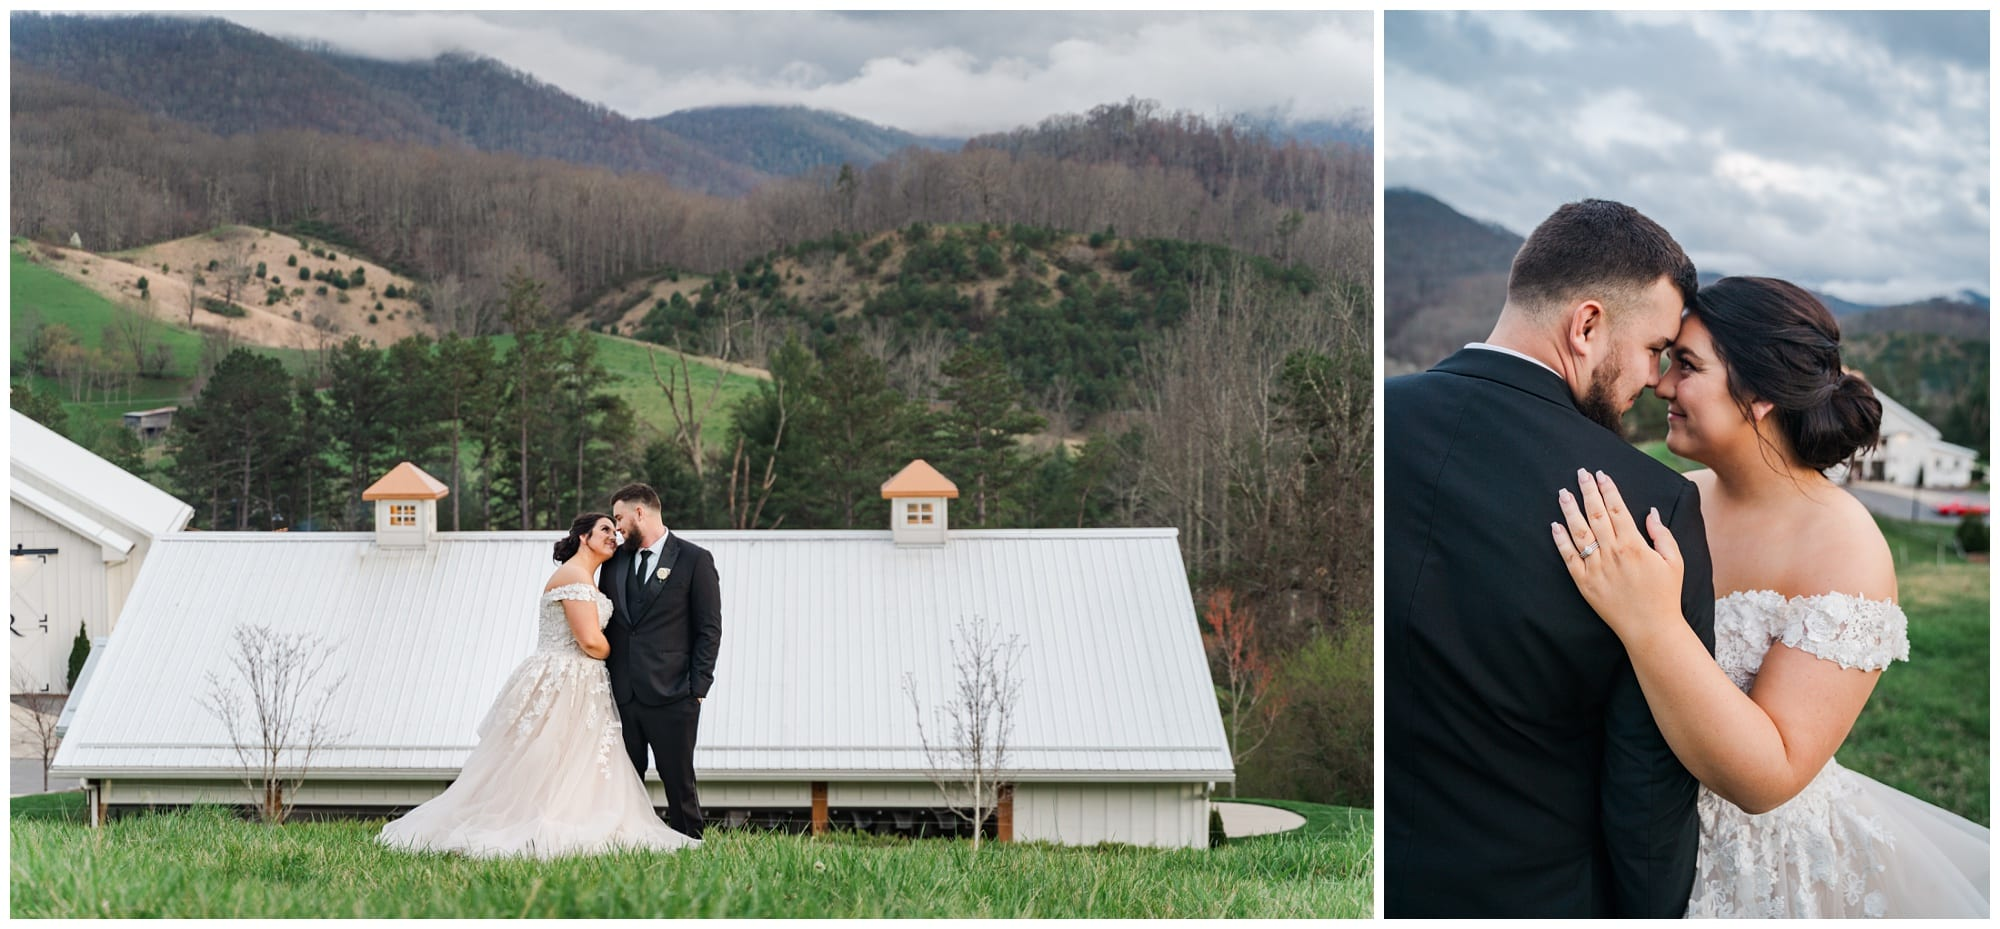 Bride and Groom in field overlooking wedding venue and mountains